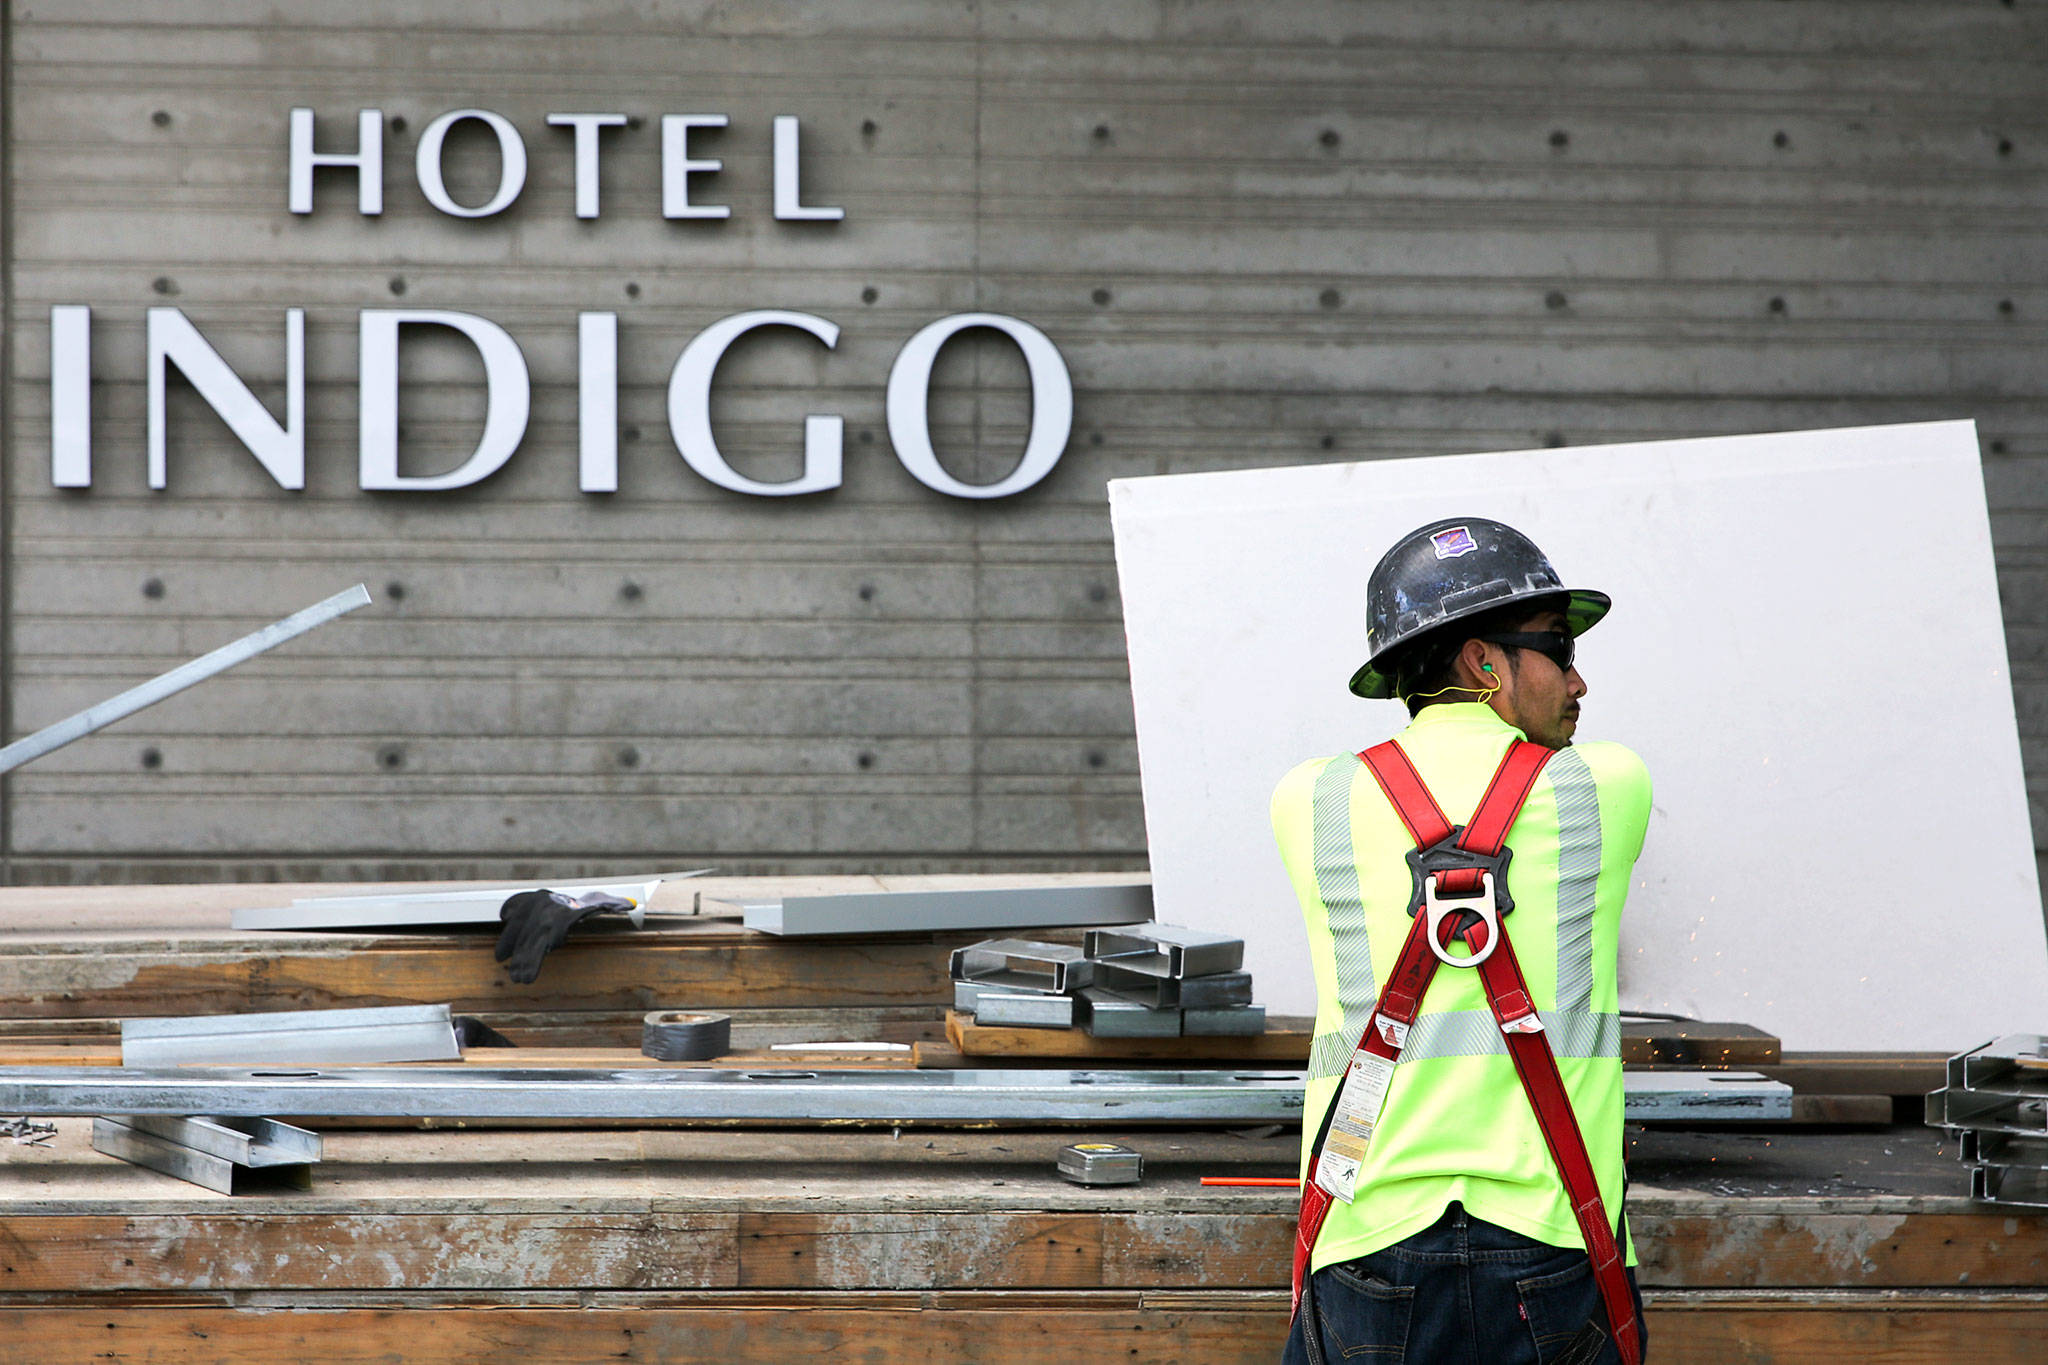 A construction crew member cuts steel at Hotel Indigo during construction on Port of Everett's Waterfront Place on June 26. (Kevin Clark / The Herald)